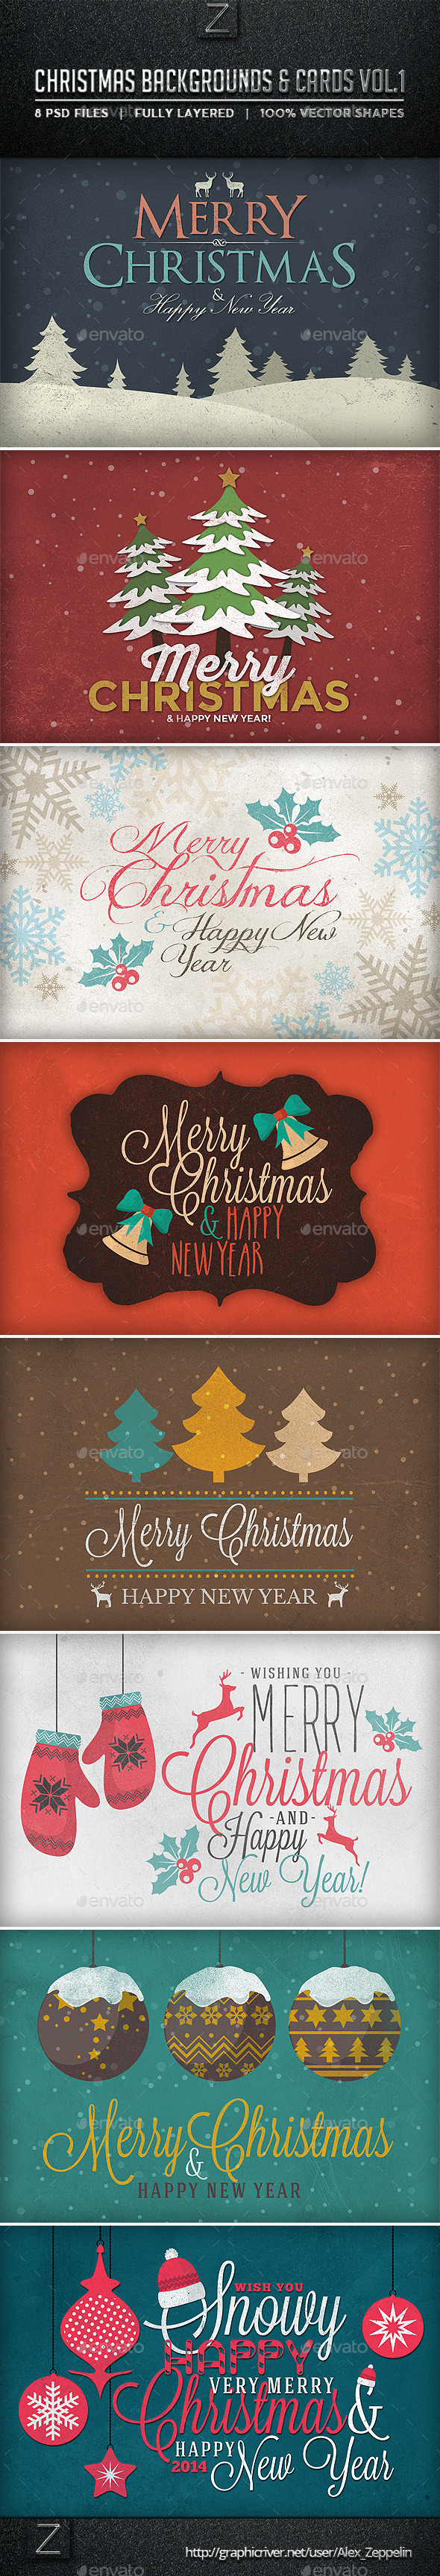 Christmas Backgrounds and Cards Vol.1 - Backgrounds Graphics